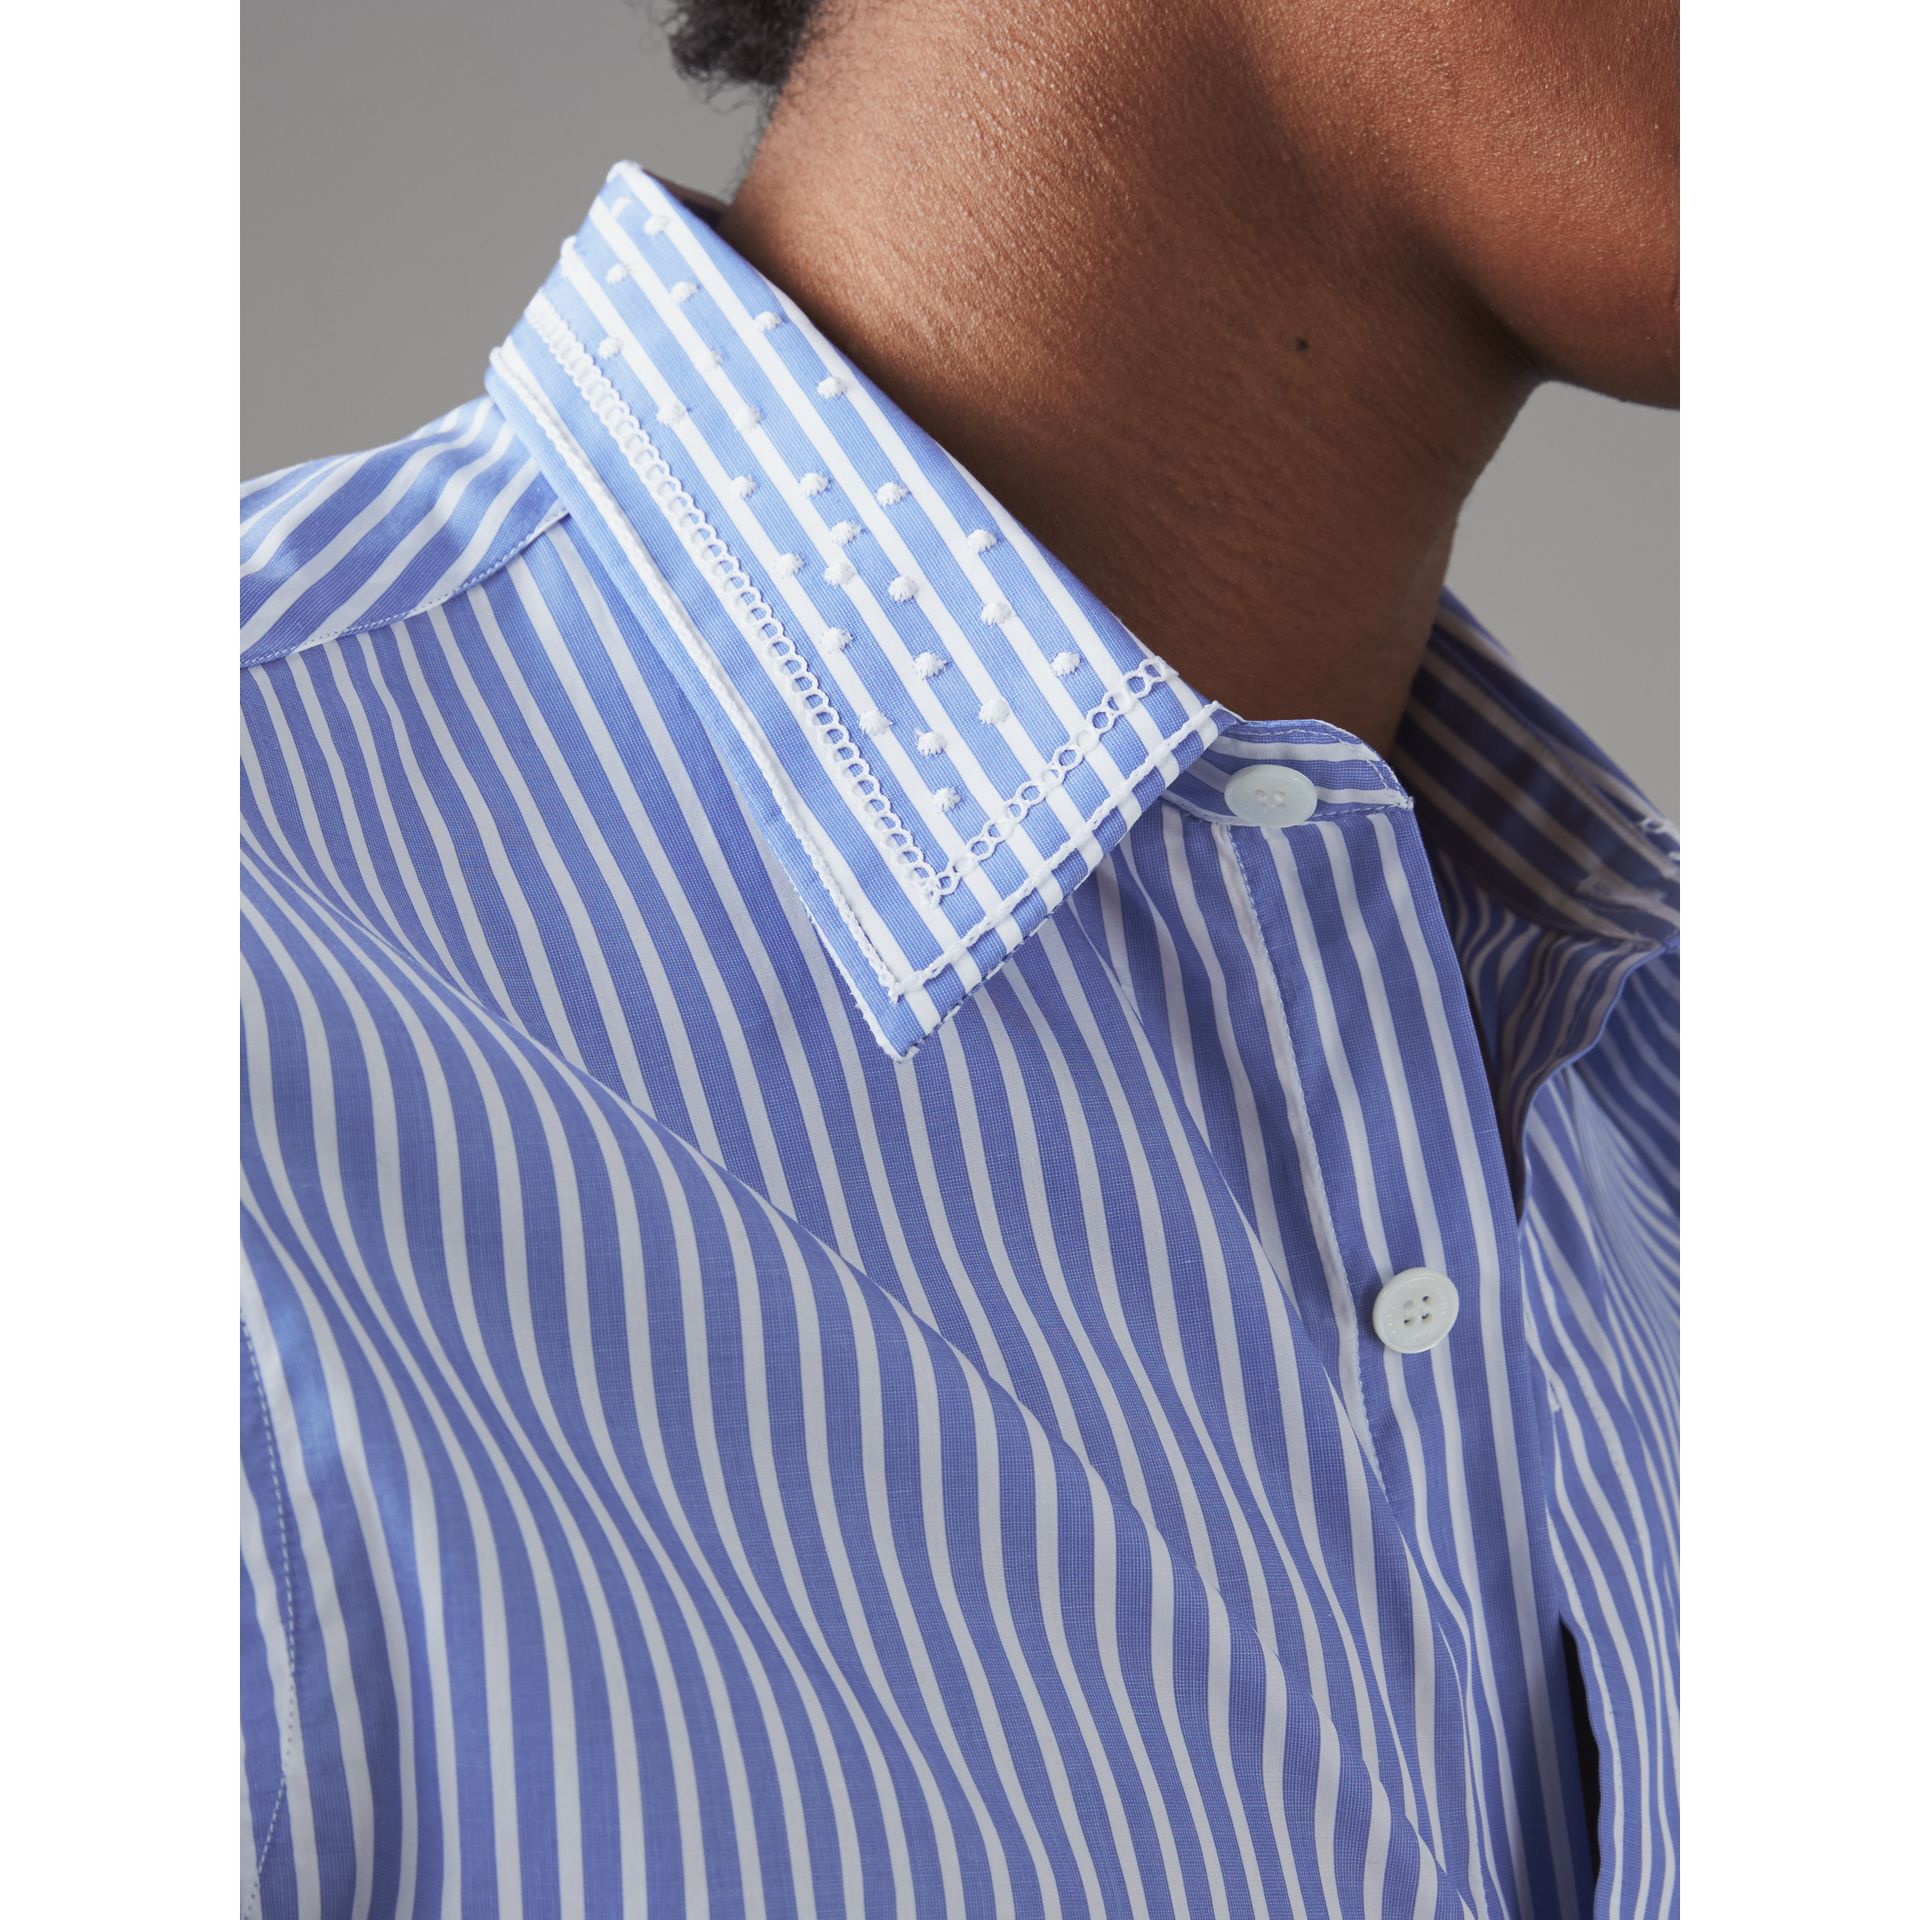 Embroidered Collar Striped Cotton Shirt in Mid Blue - Men | Burberry United States - gallery image 1